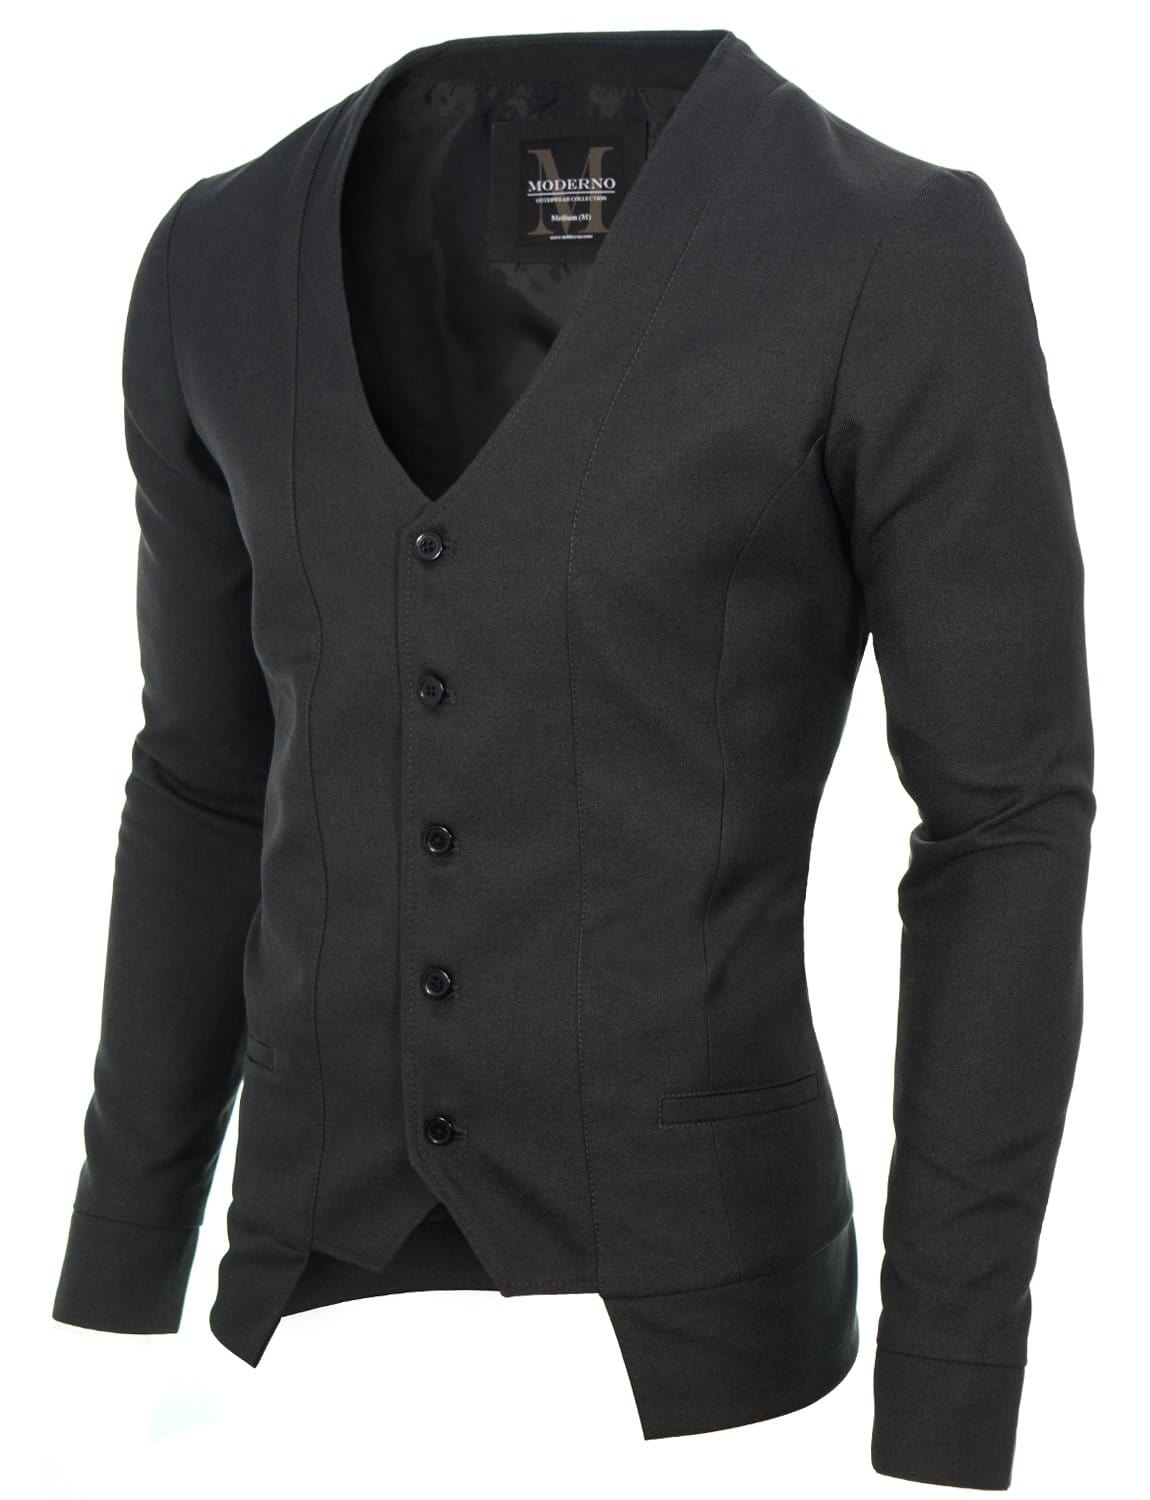 Mens slim fit long sleeve vest cardigan charcoal (MOD16130V)